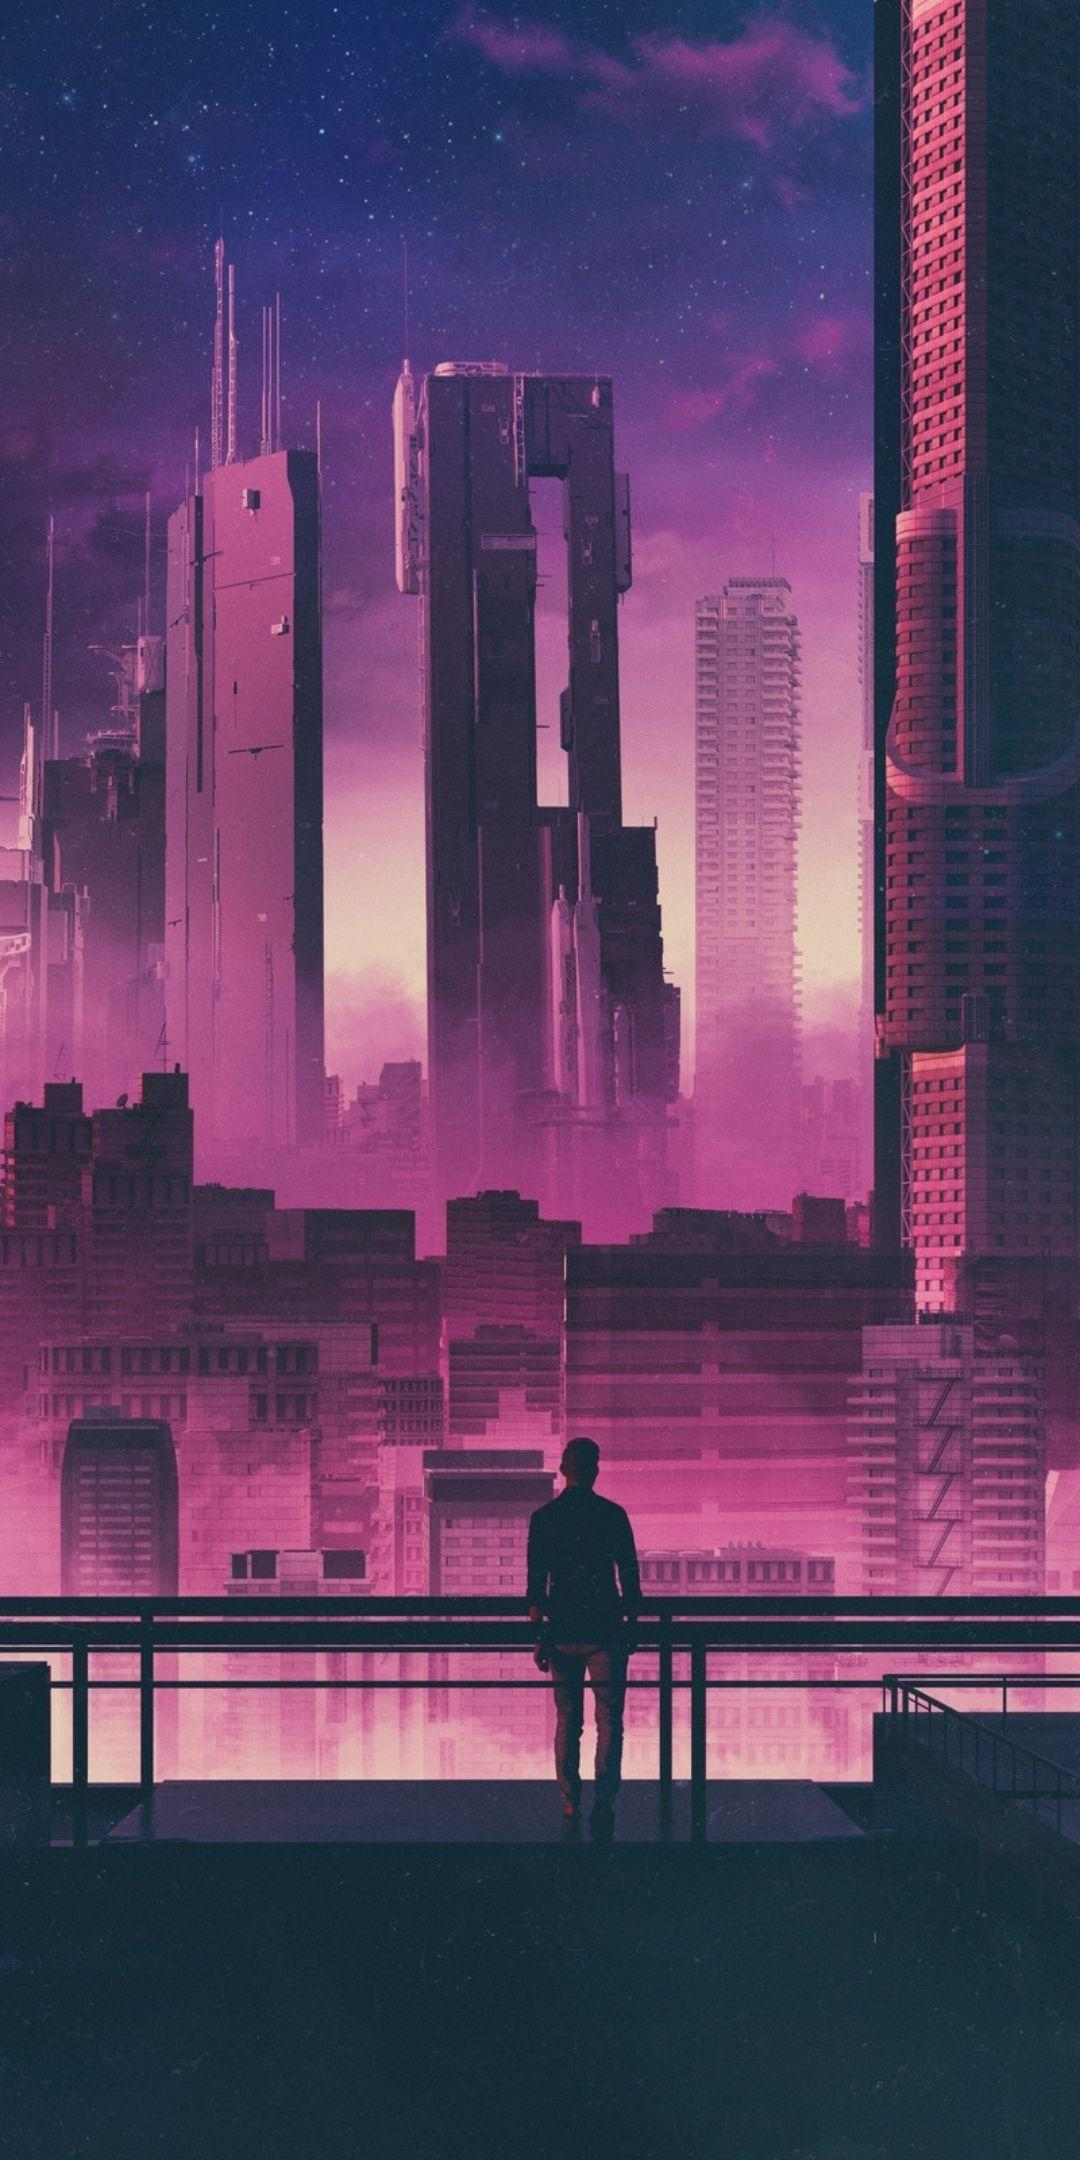 Cyberpunk 2077 Mobile Hd Wallpapers Wallpaper Cave